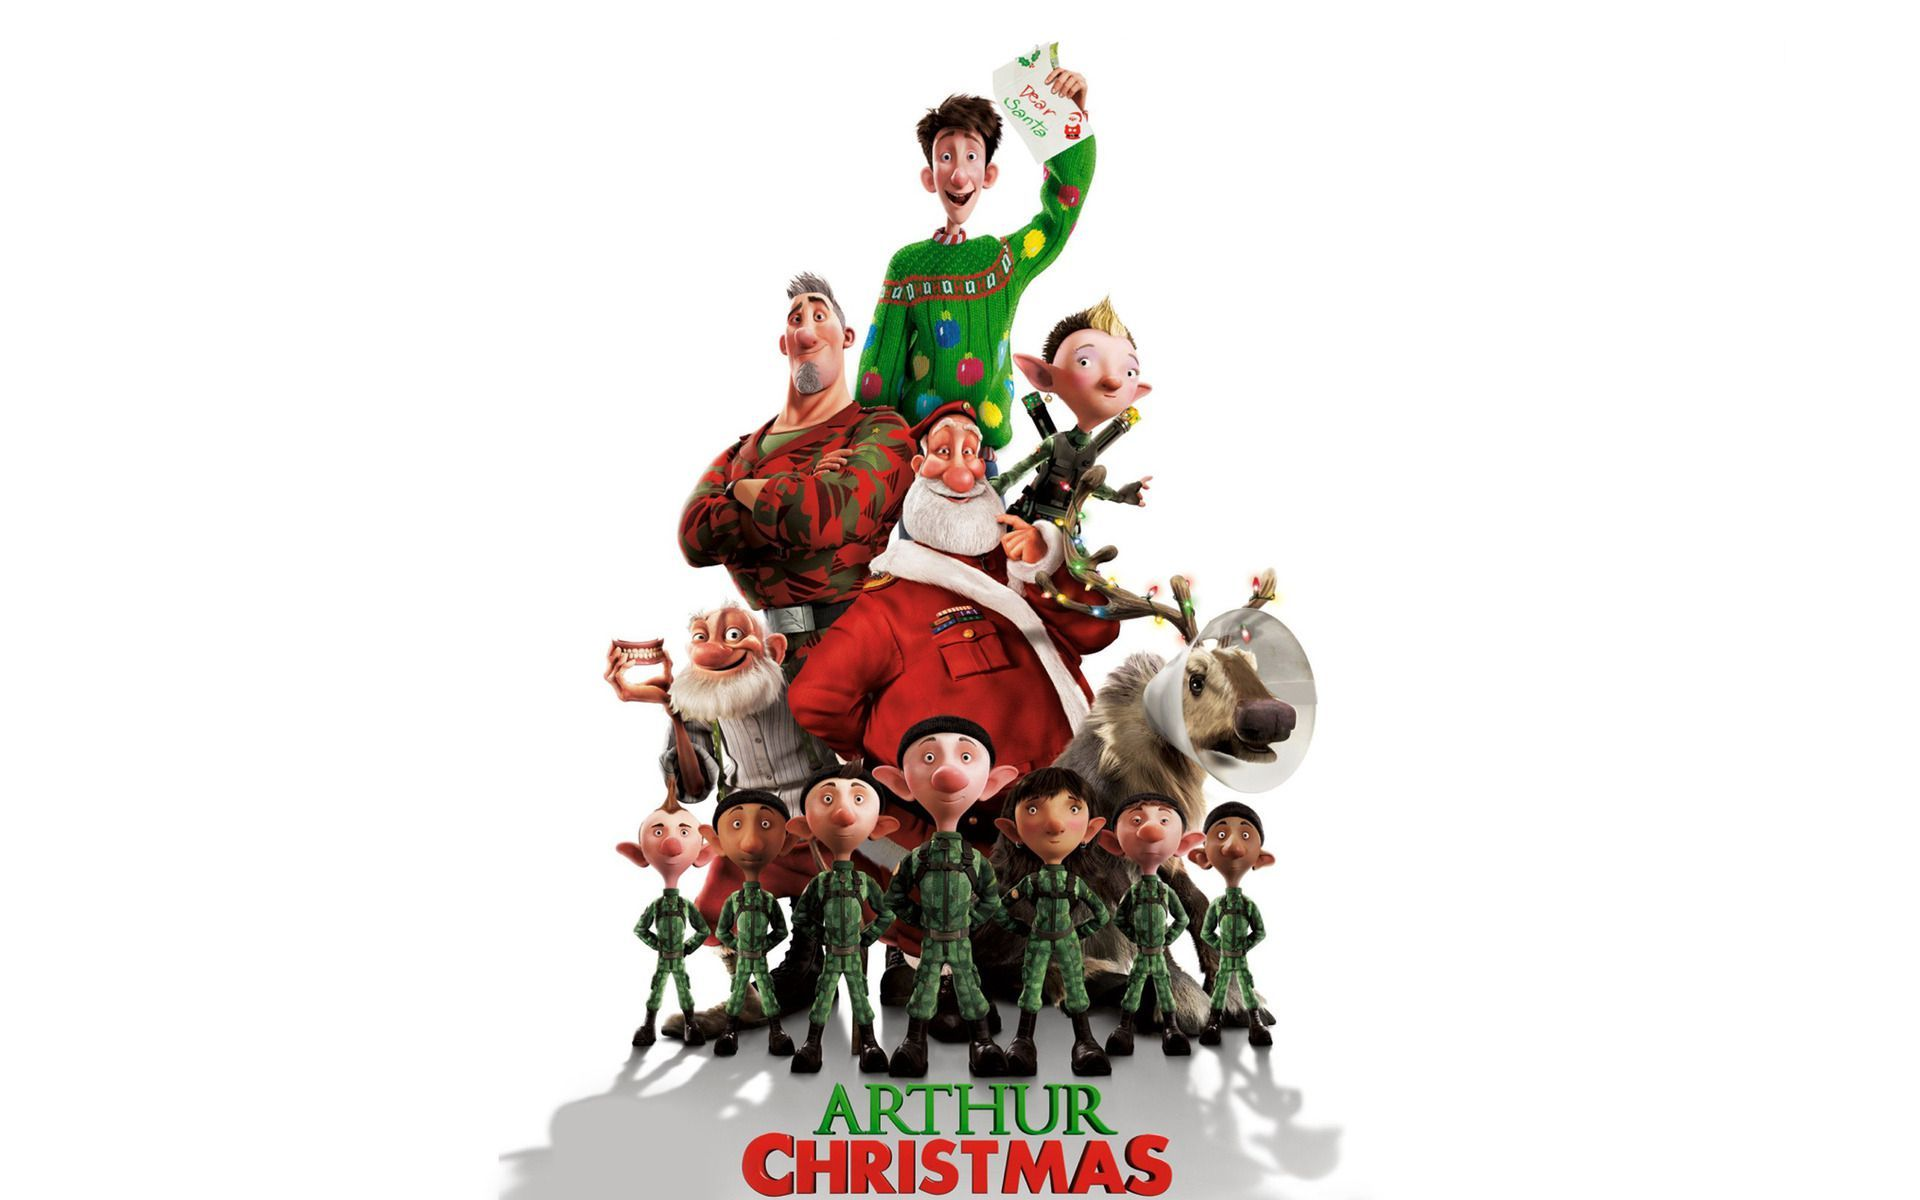 Matthews favorite movie is With images Arthur christmas 1920x1200